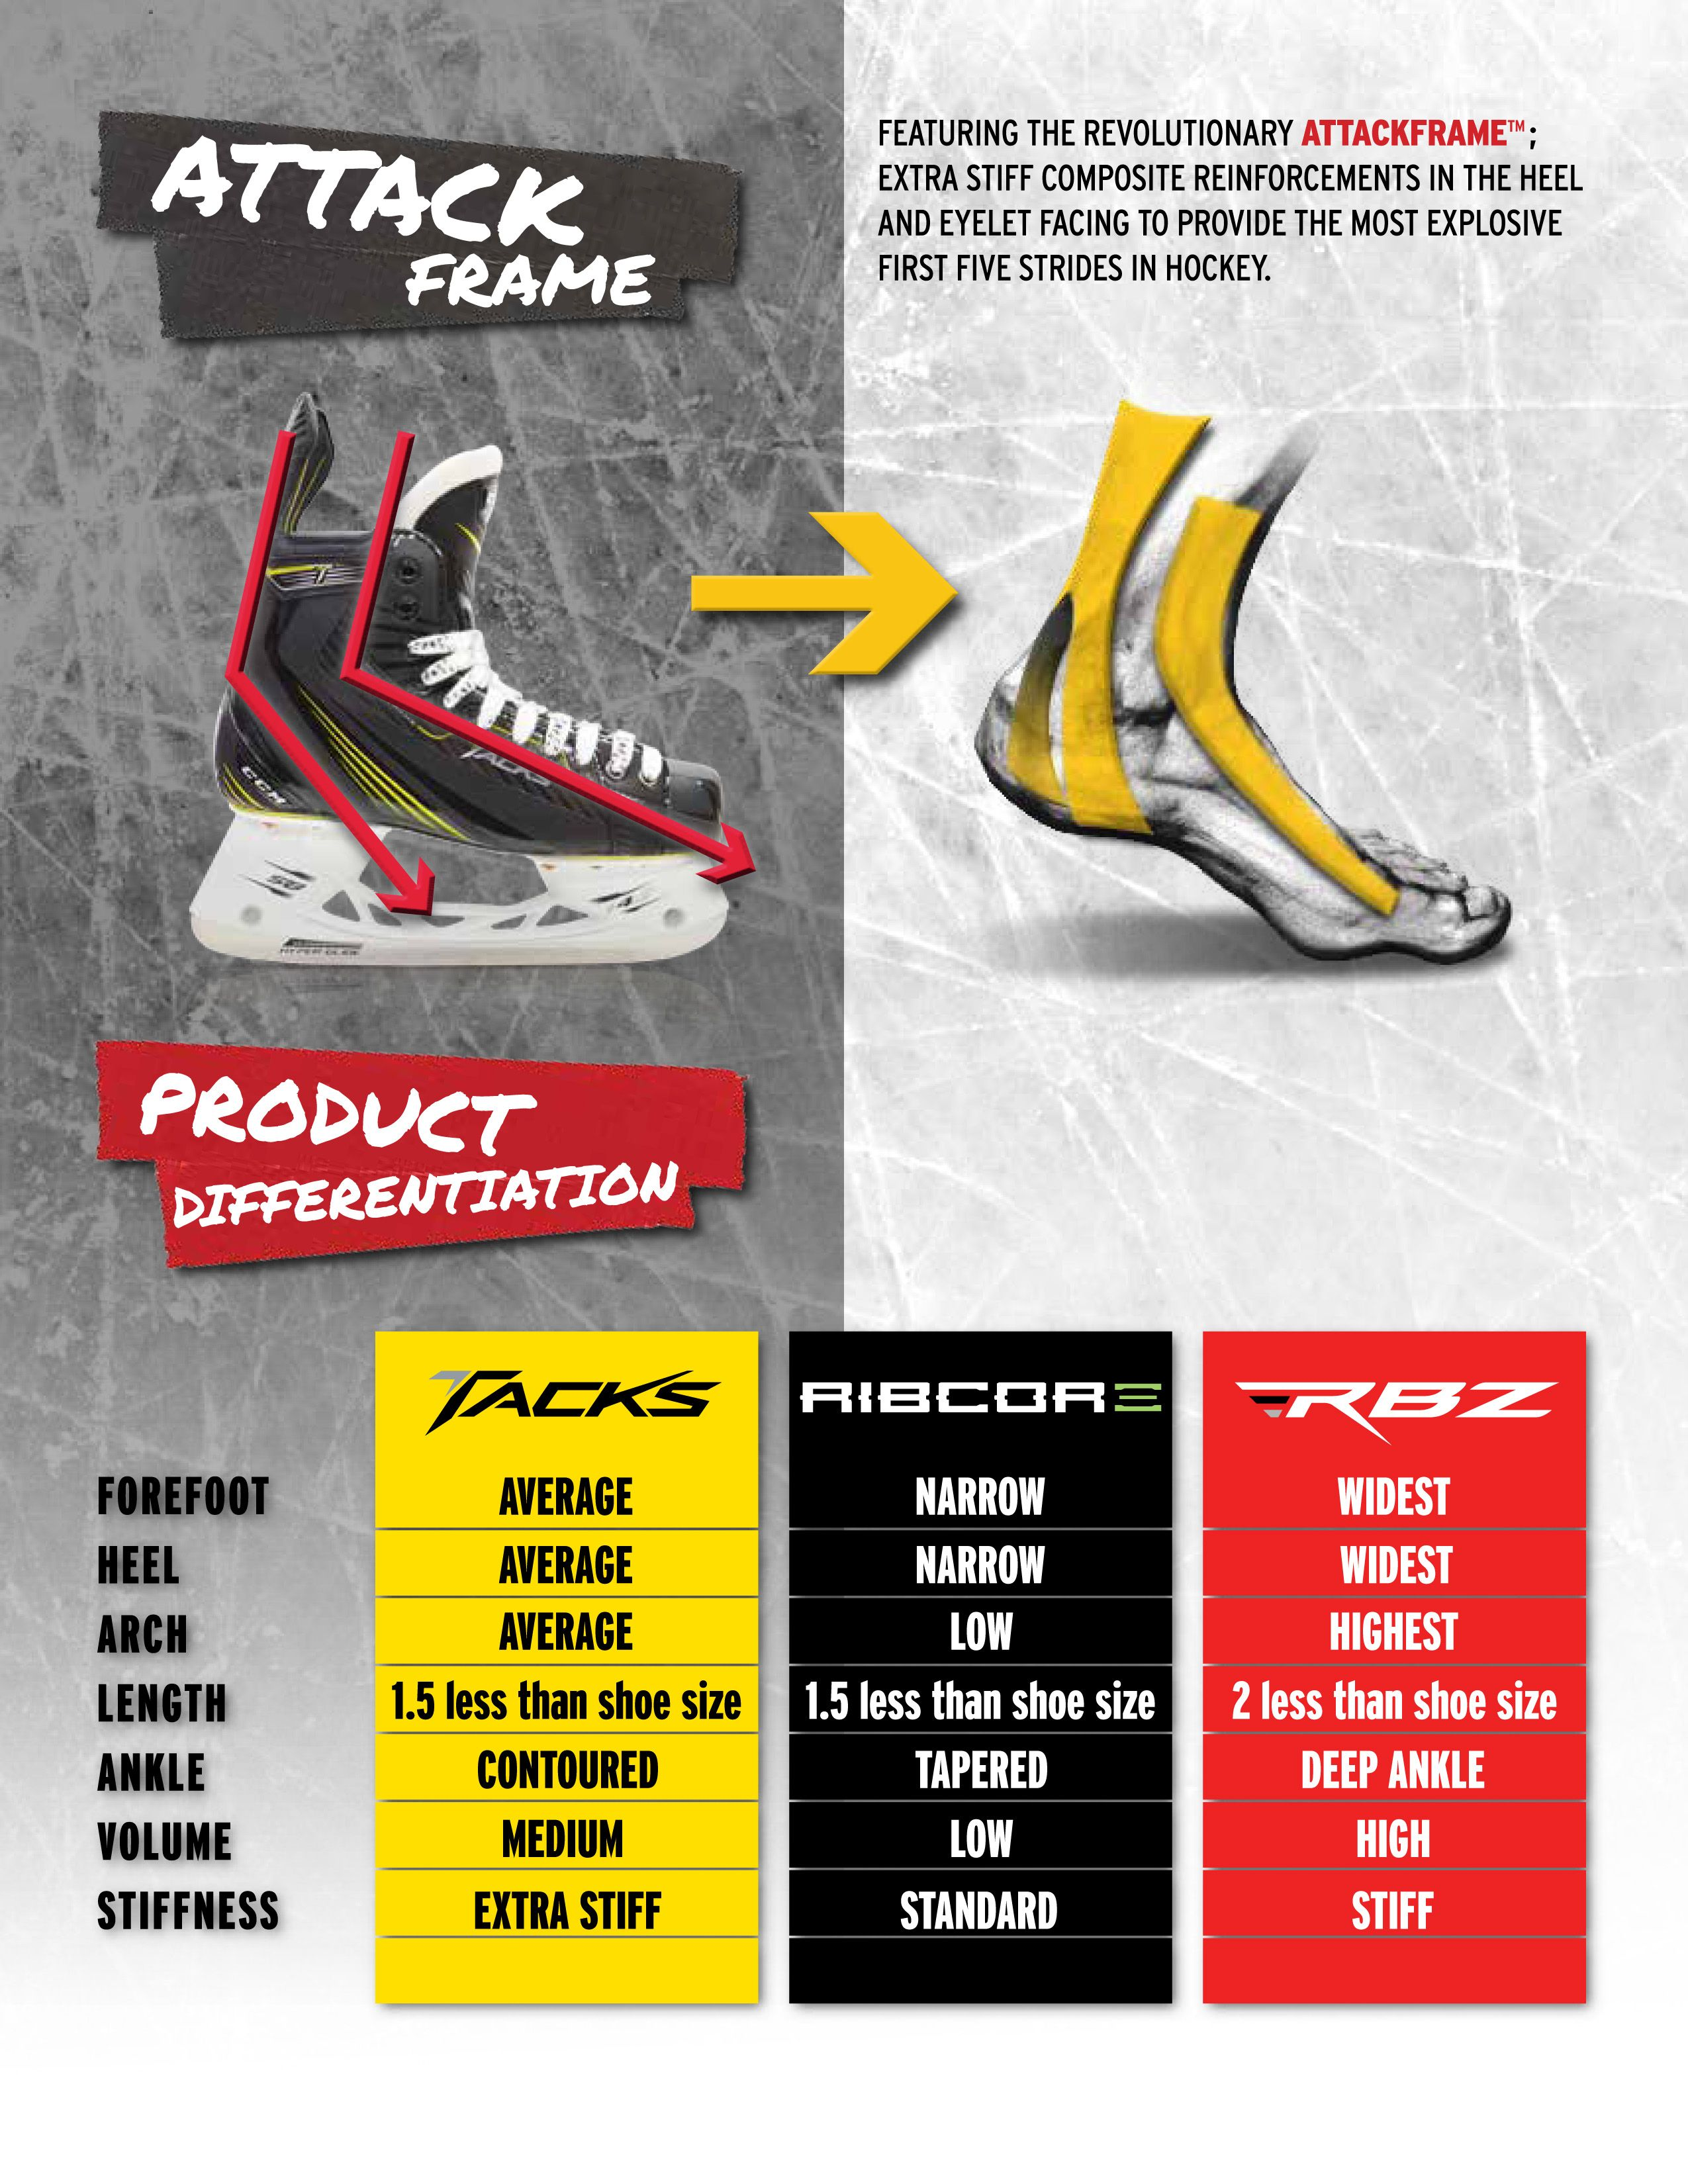 Tacks Vs Ribcor Vs Rbz The Following Skate Differentiation Chart Will Help You See The Differences Between All Hockey Wide Heels Philadelphia Eagles Super Bowl